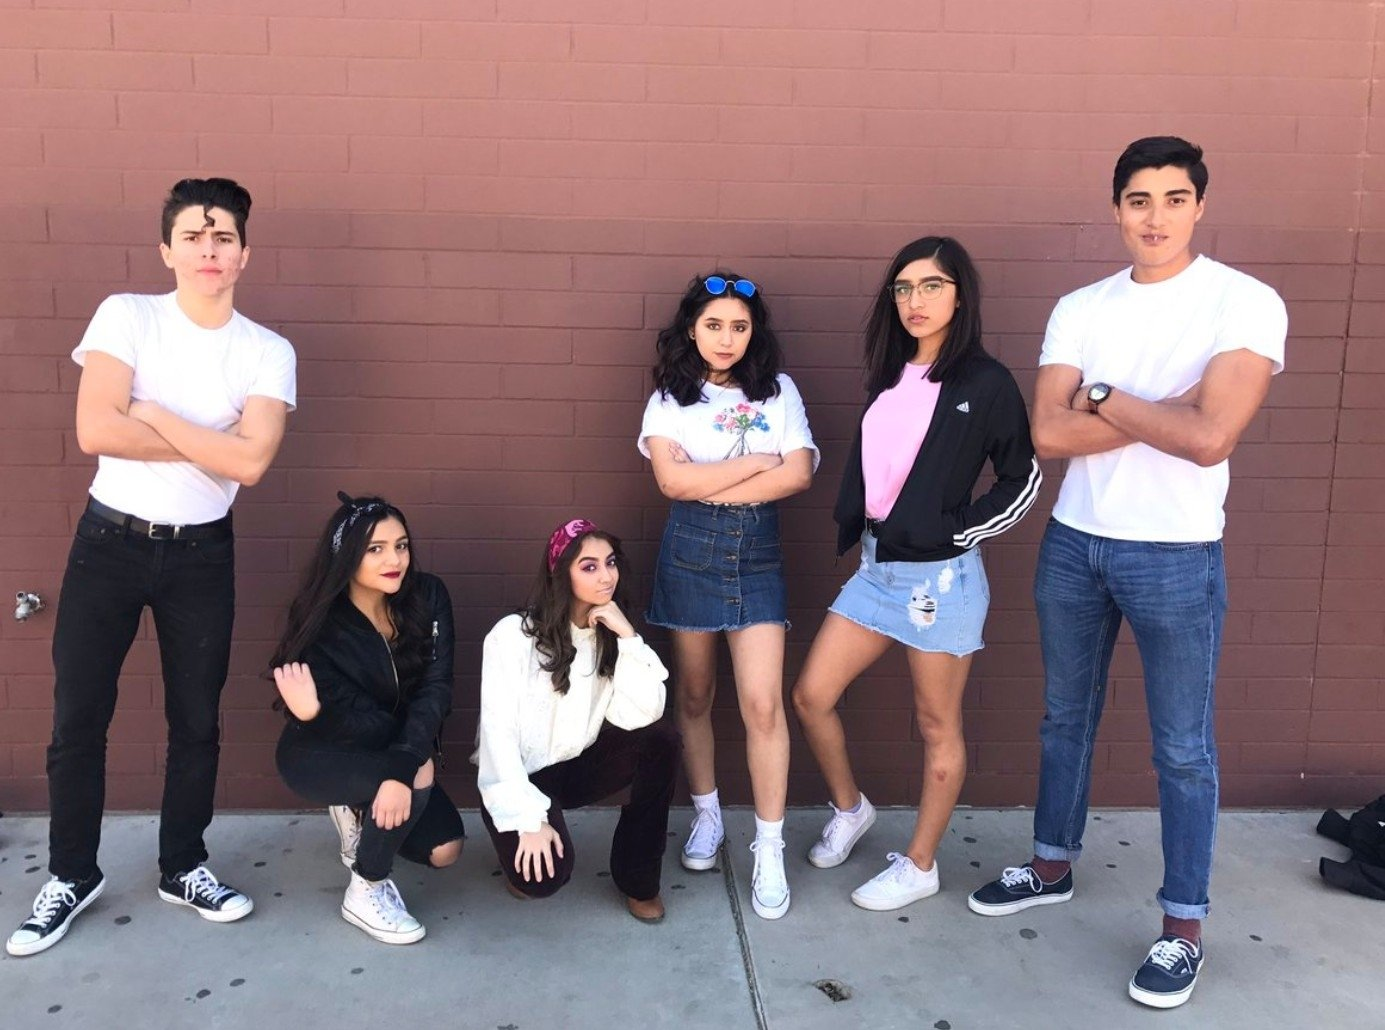 10 Elegant Decade Day Ideas For Boys decades day spirit week pinterest spirit week ideas frat boy